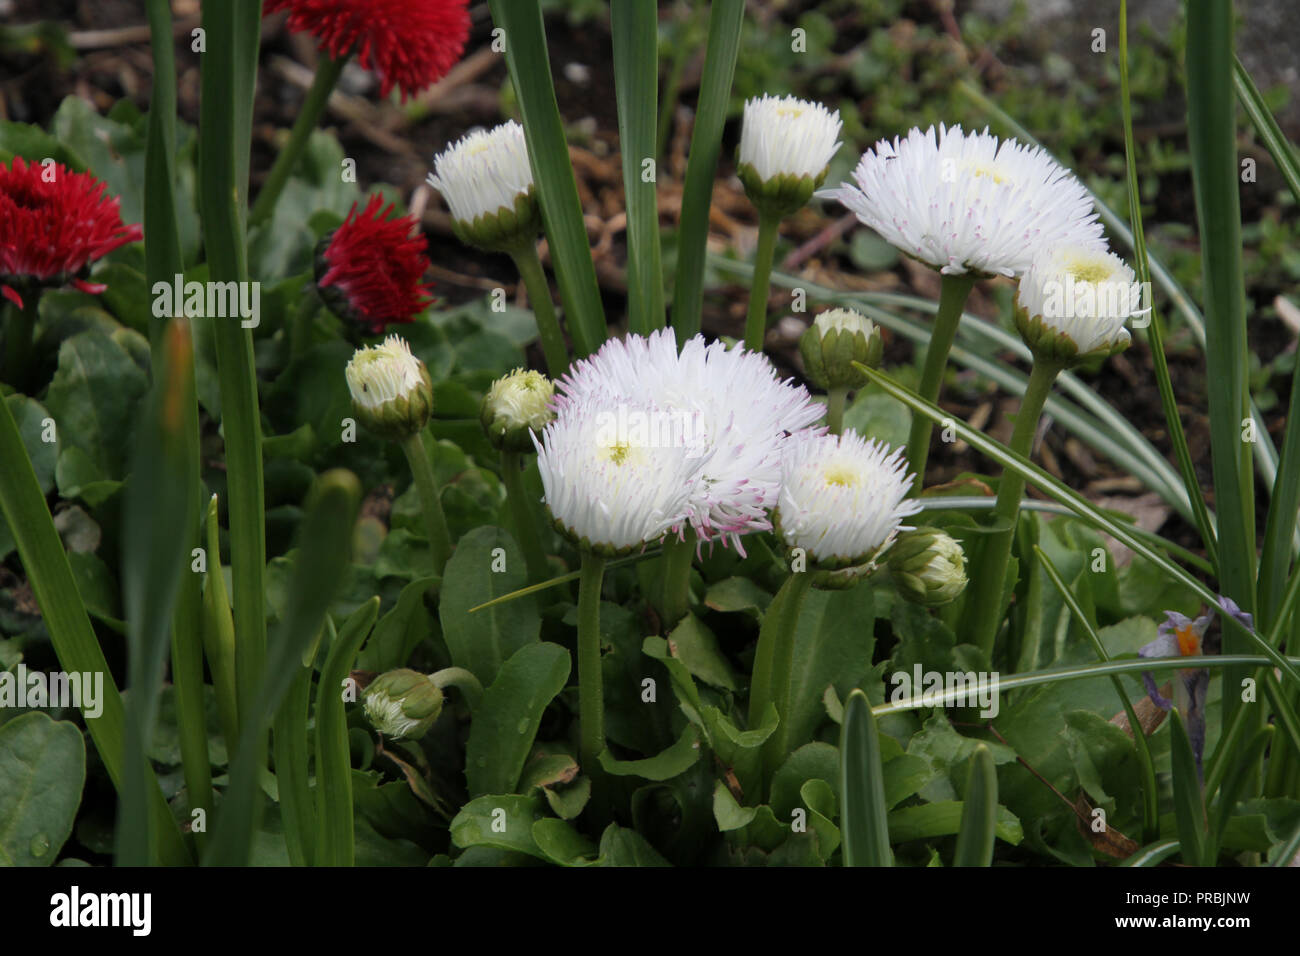 White flower red tips stock photos white flower red tips stock white flowers with purple tips with red flowers in the background stock image mightylinksfo